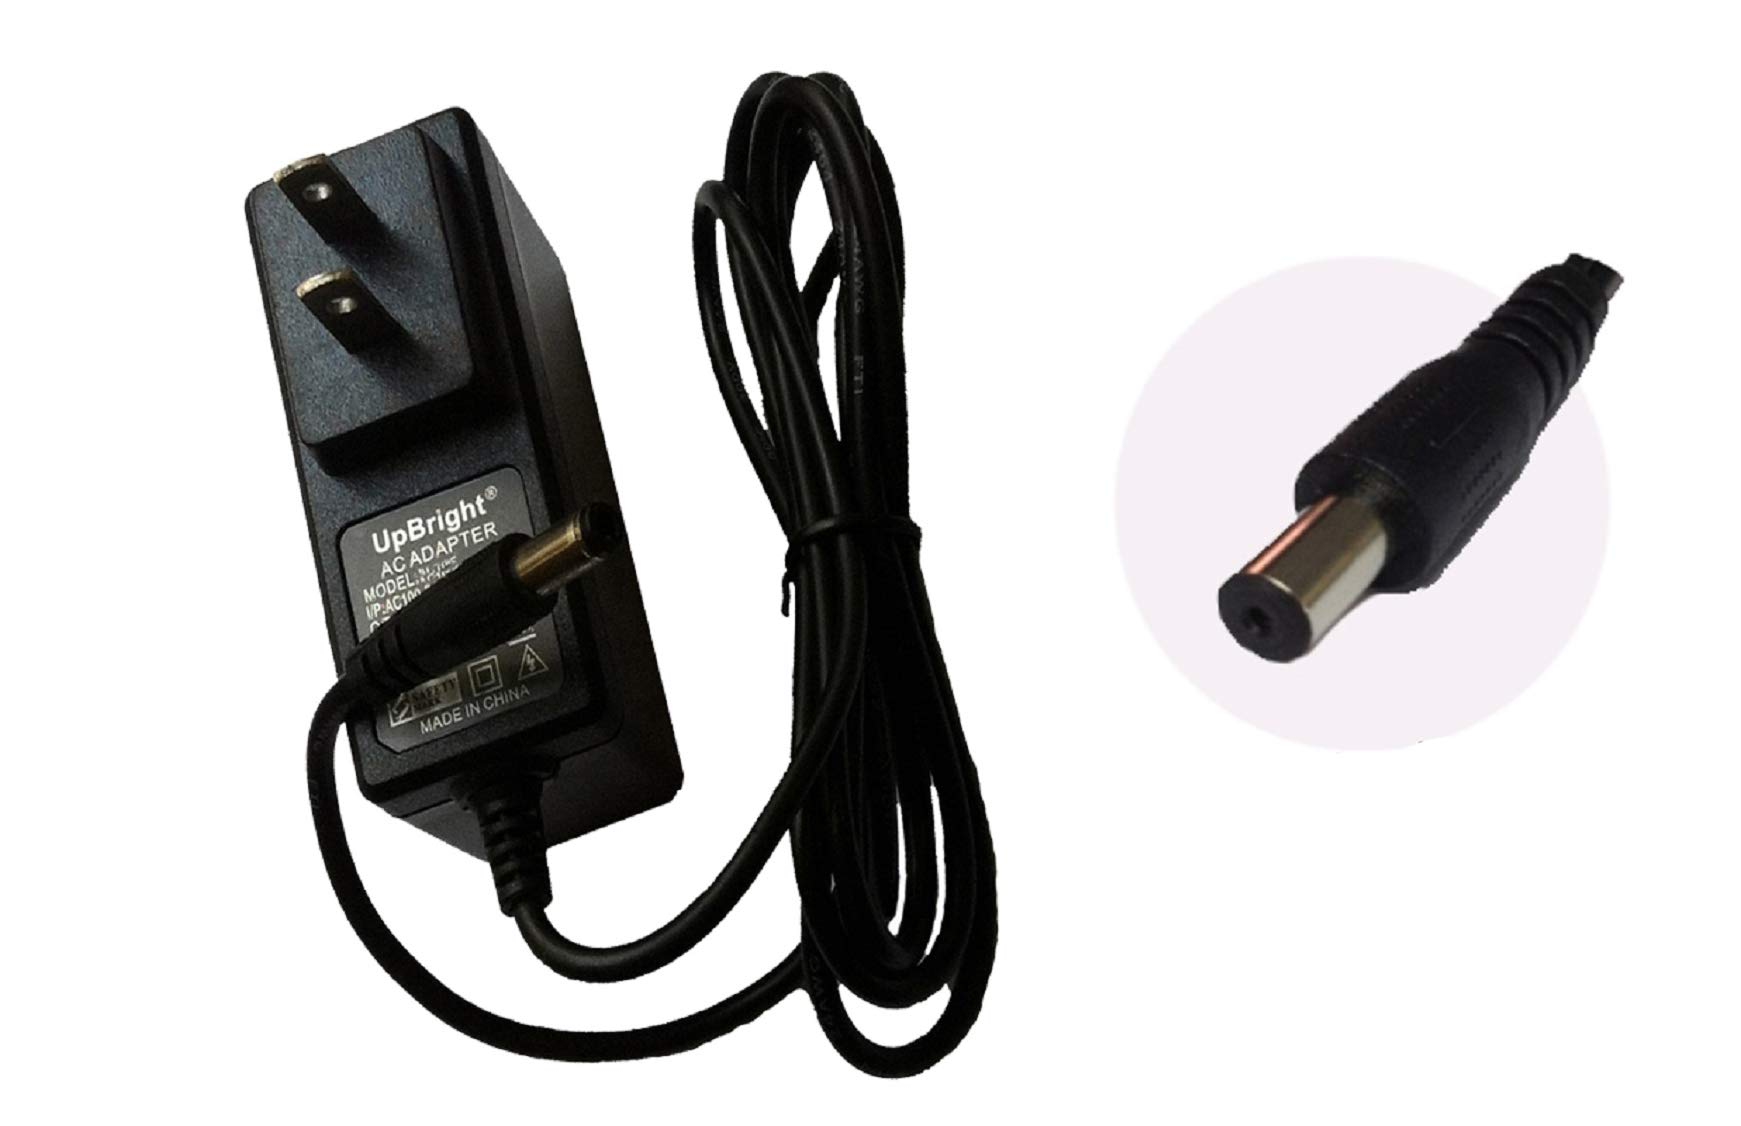 UpBright 12V AC/DC Adapter For Casio Privia PX-100 PX-110 PX-120 PX-200 PX-300 PX-310 PX-320 PX-500L WK-1200 WK-1250 WK-1300 WK-1350 CT640 CTK-5000 CPS85 Piano Keyboard AD-12MLA(U) FC2 12VDC Power